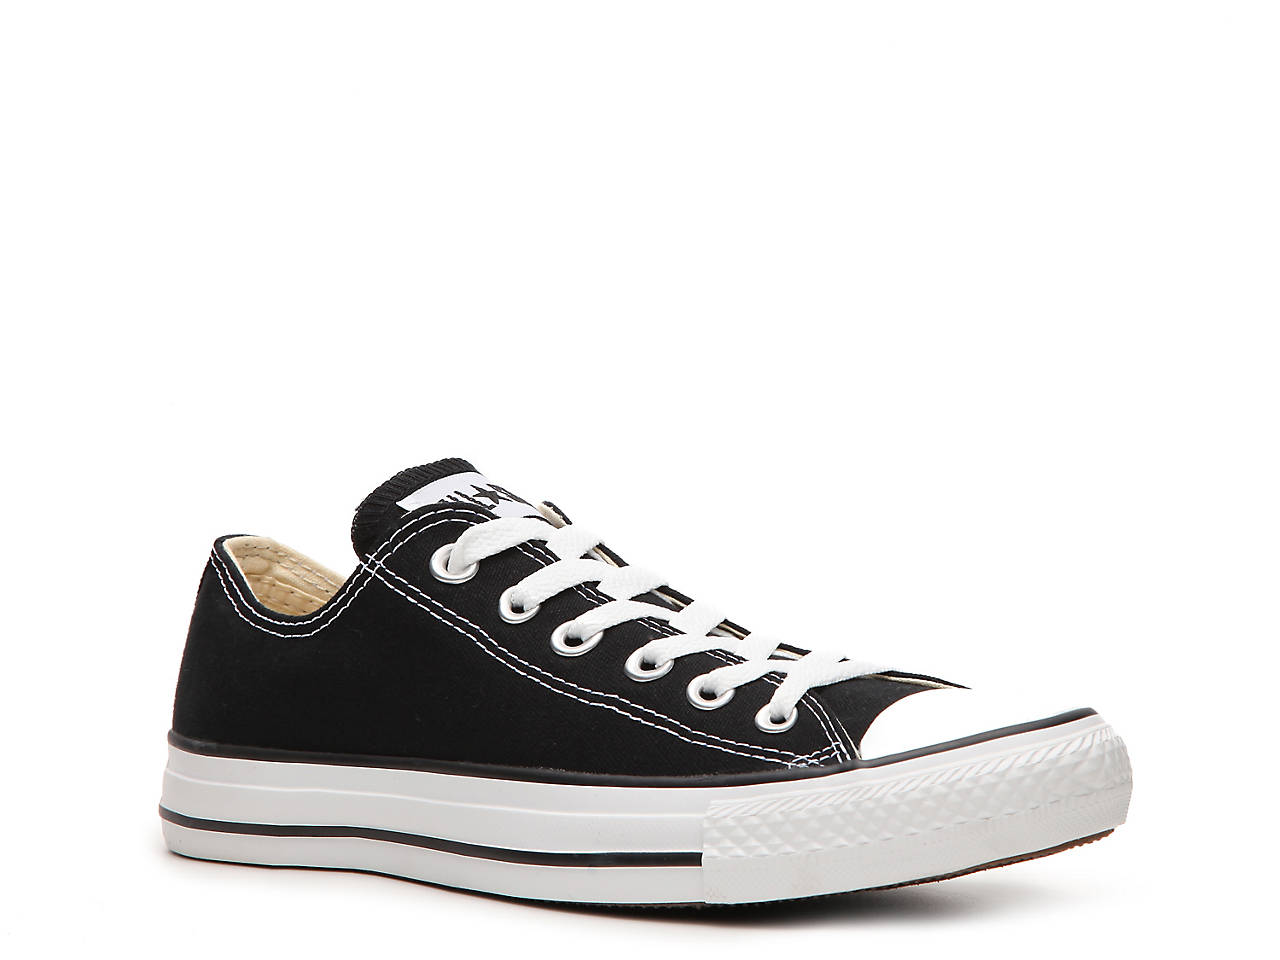 f18a5d284c93 Converse Chuck Taylor All Star Sneaker - Women s Women s Shoes